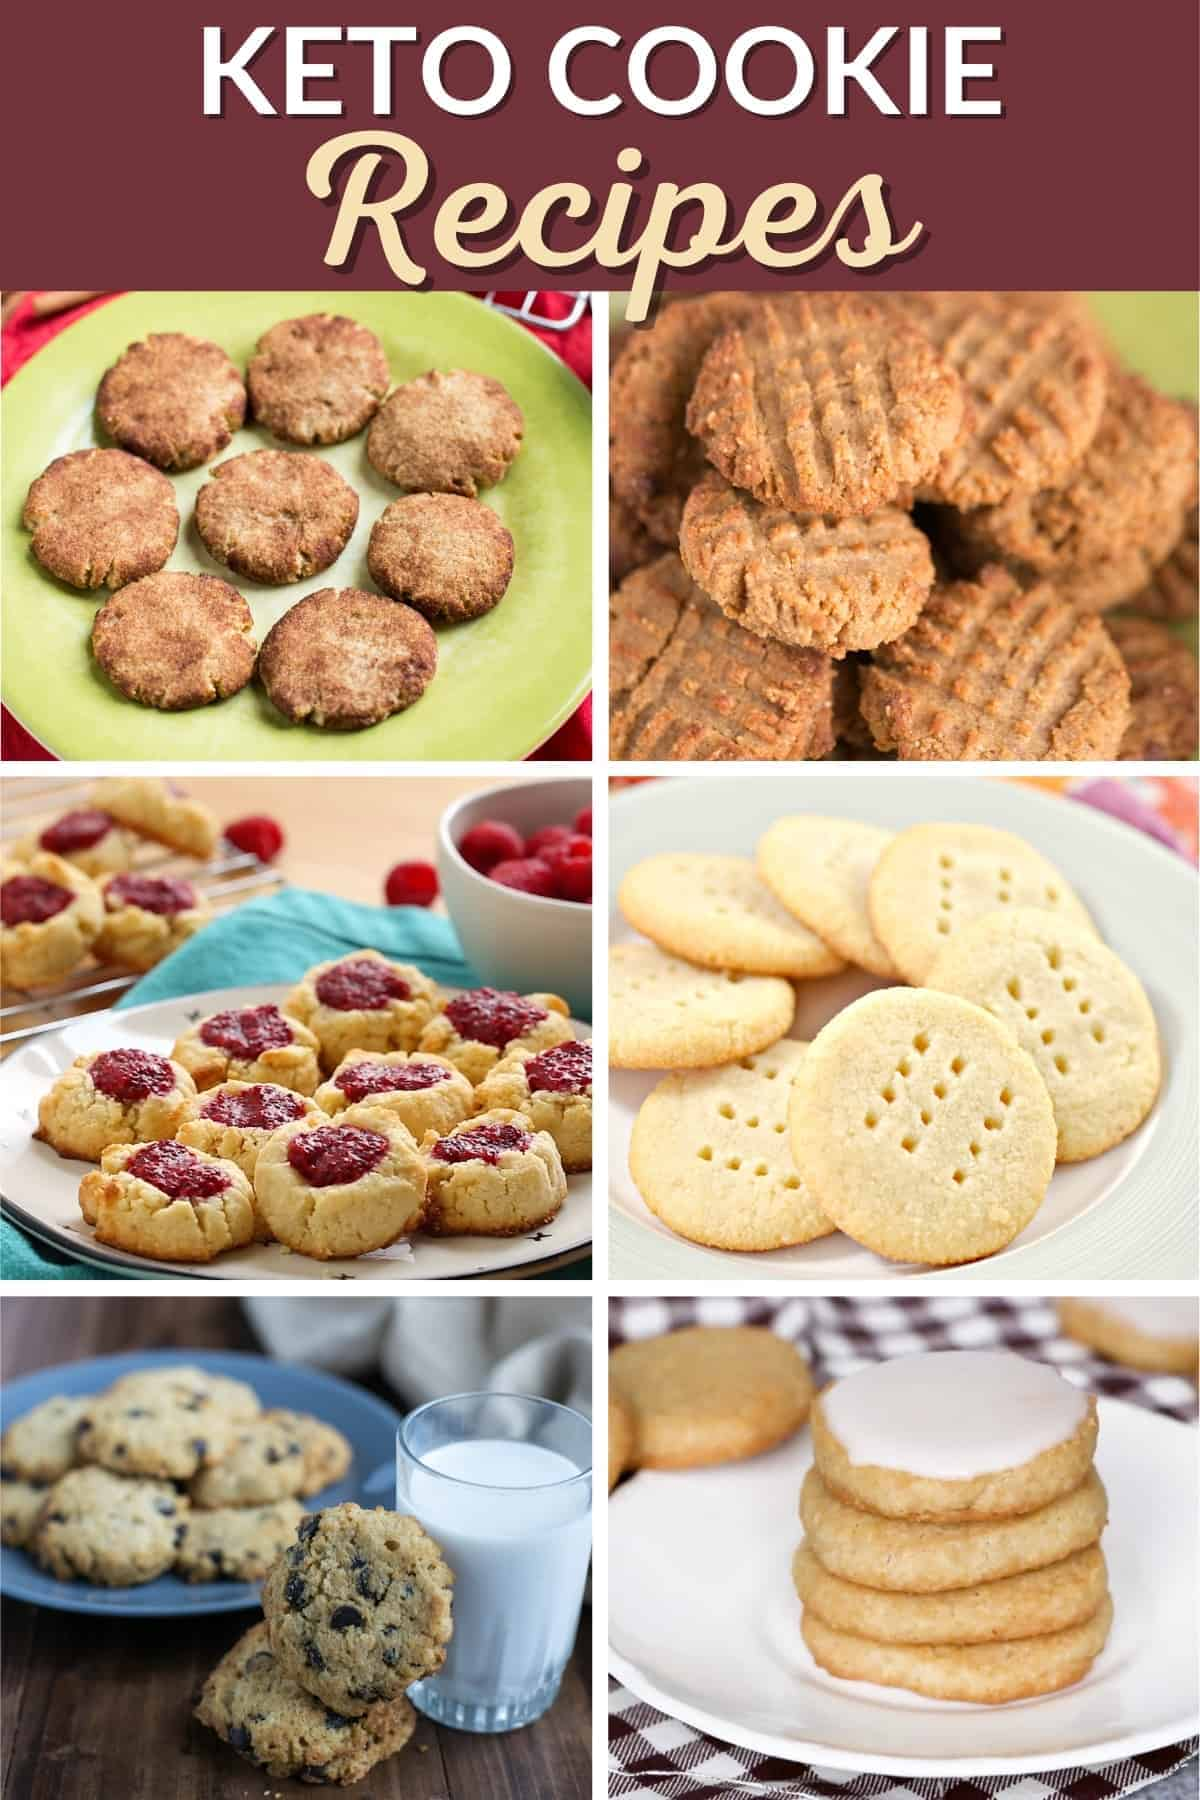 keto cookie recipes cover image